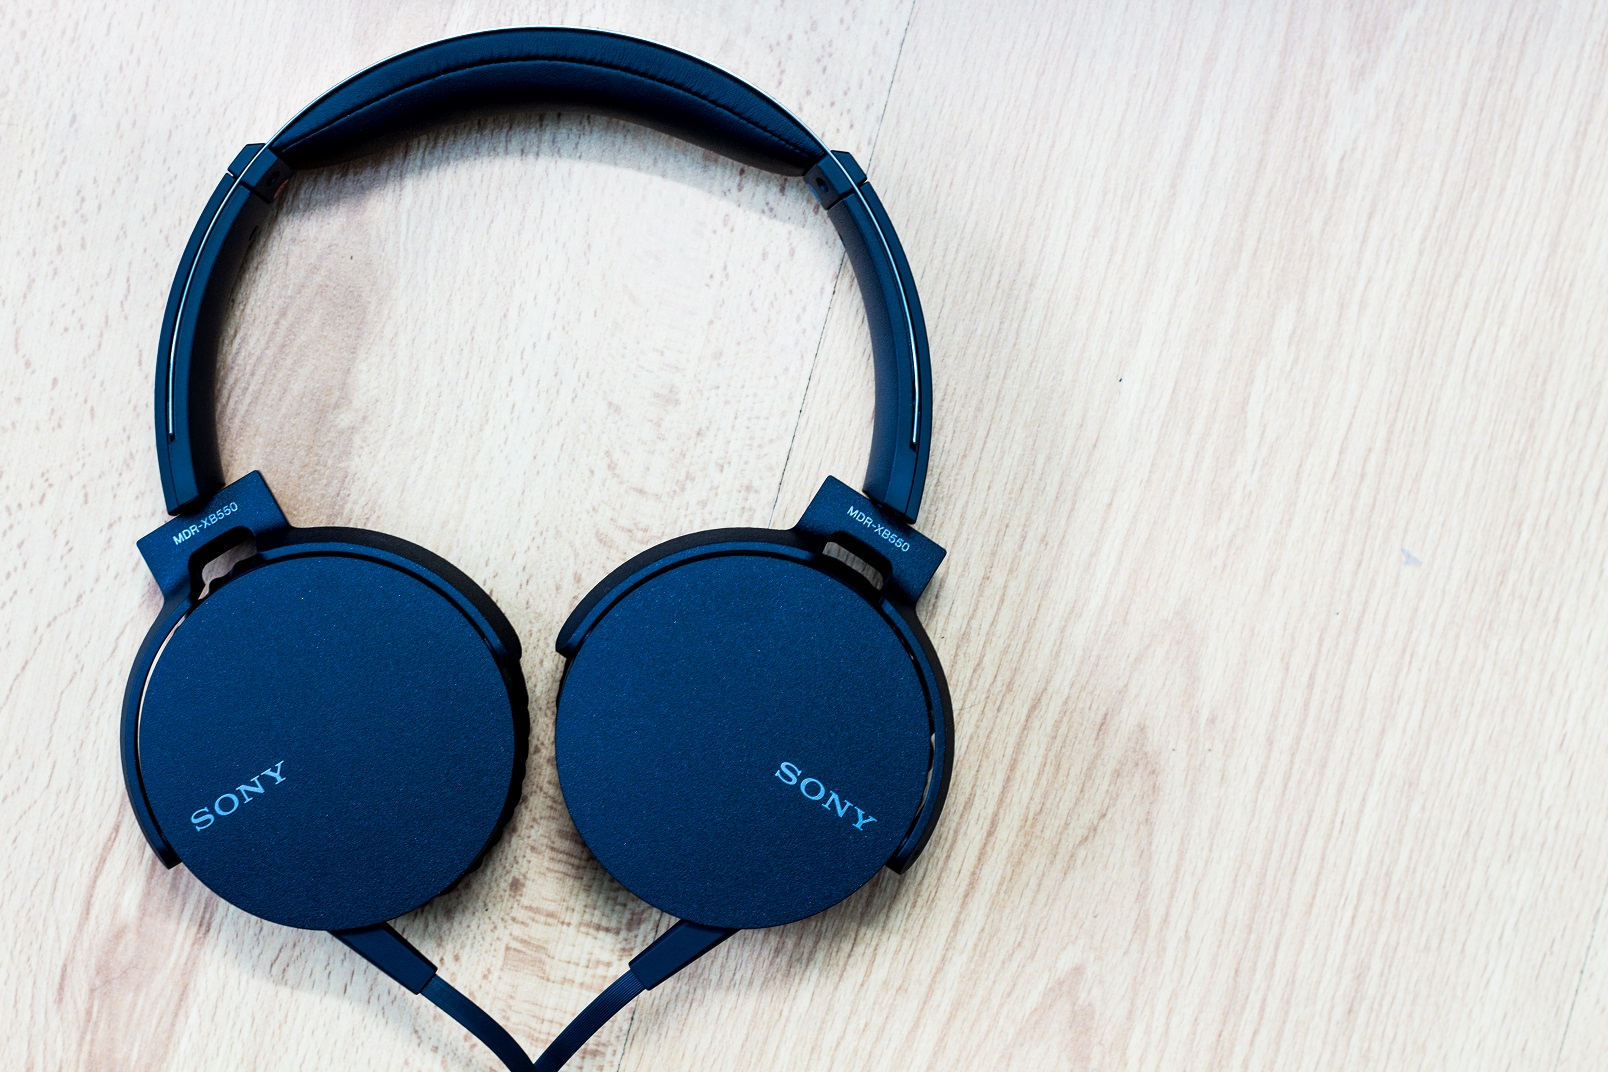 Danh-gia-tai-nghe-sony-mdr-xb550ap-5